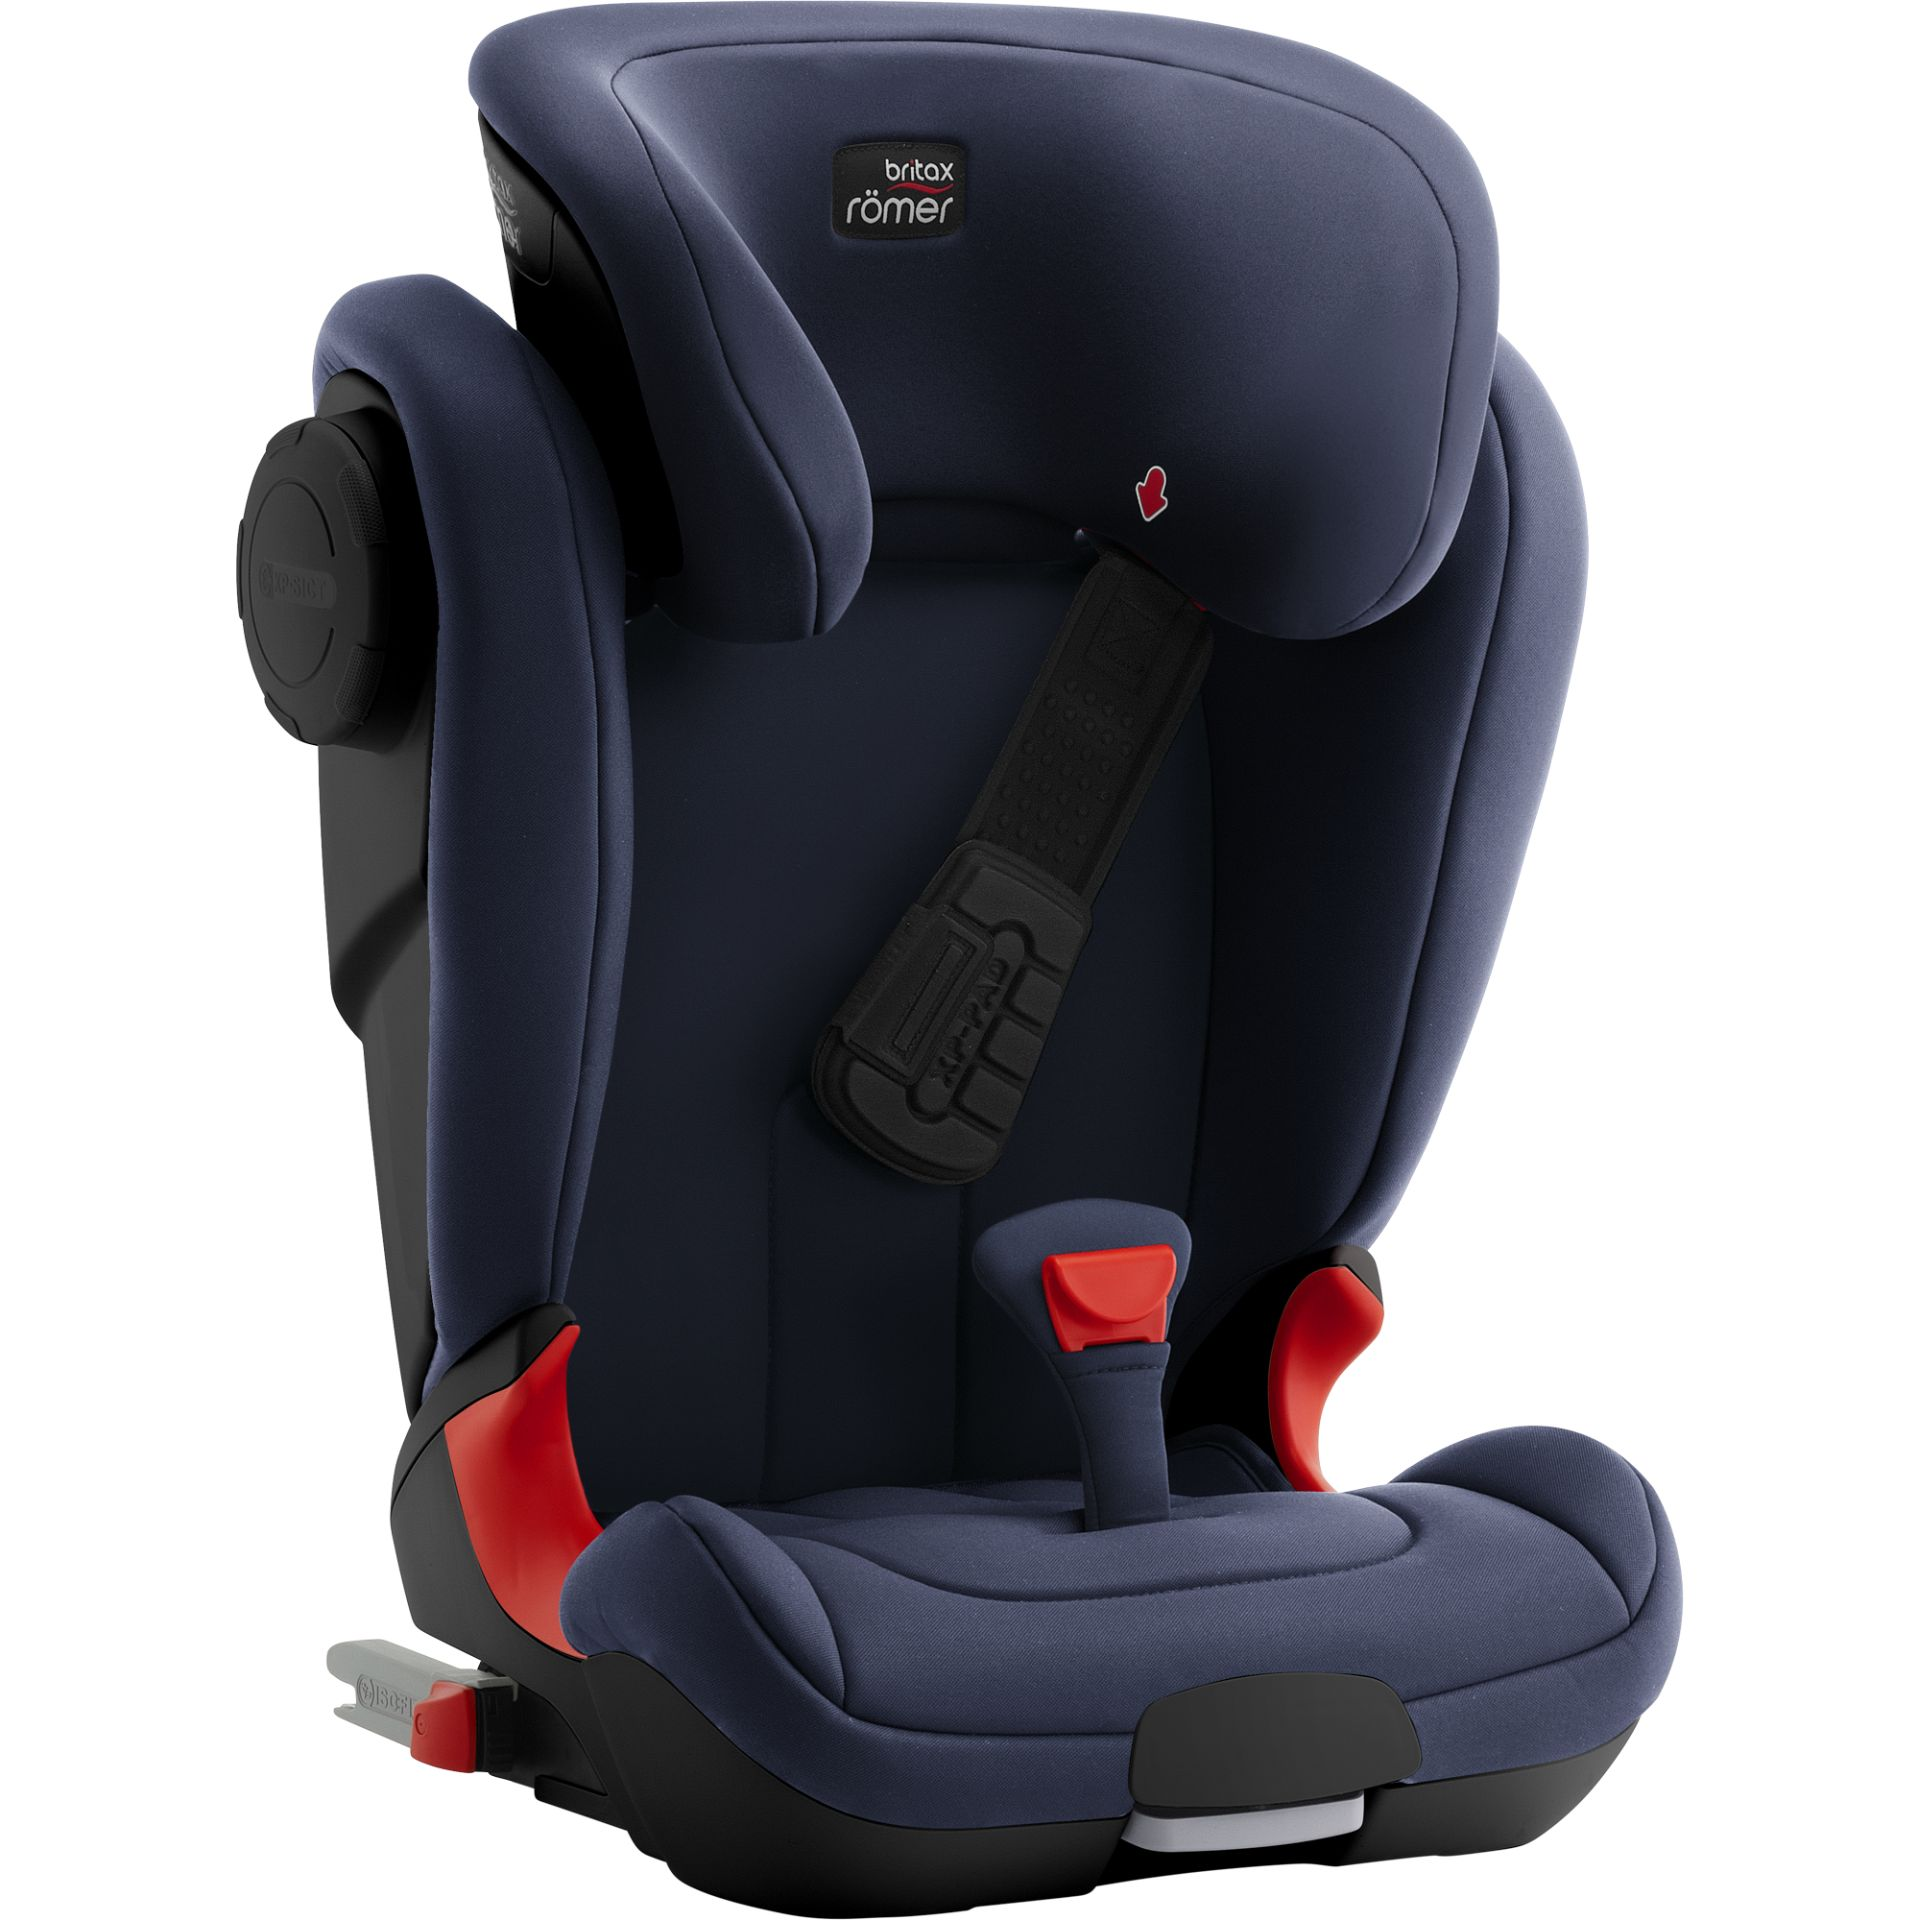 britax r mer child car seat kidfix ii xp sict black series 2018 moonlight blue buy at. Black Bedroom Furniture Sets. Home Design Ideas